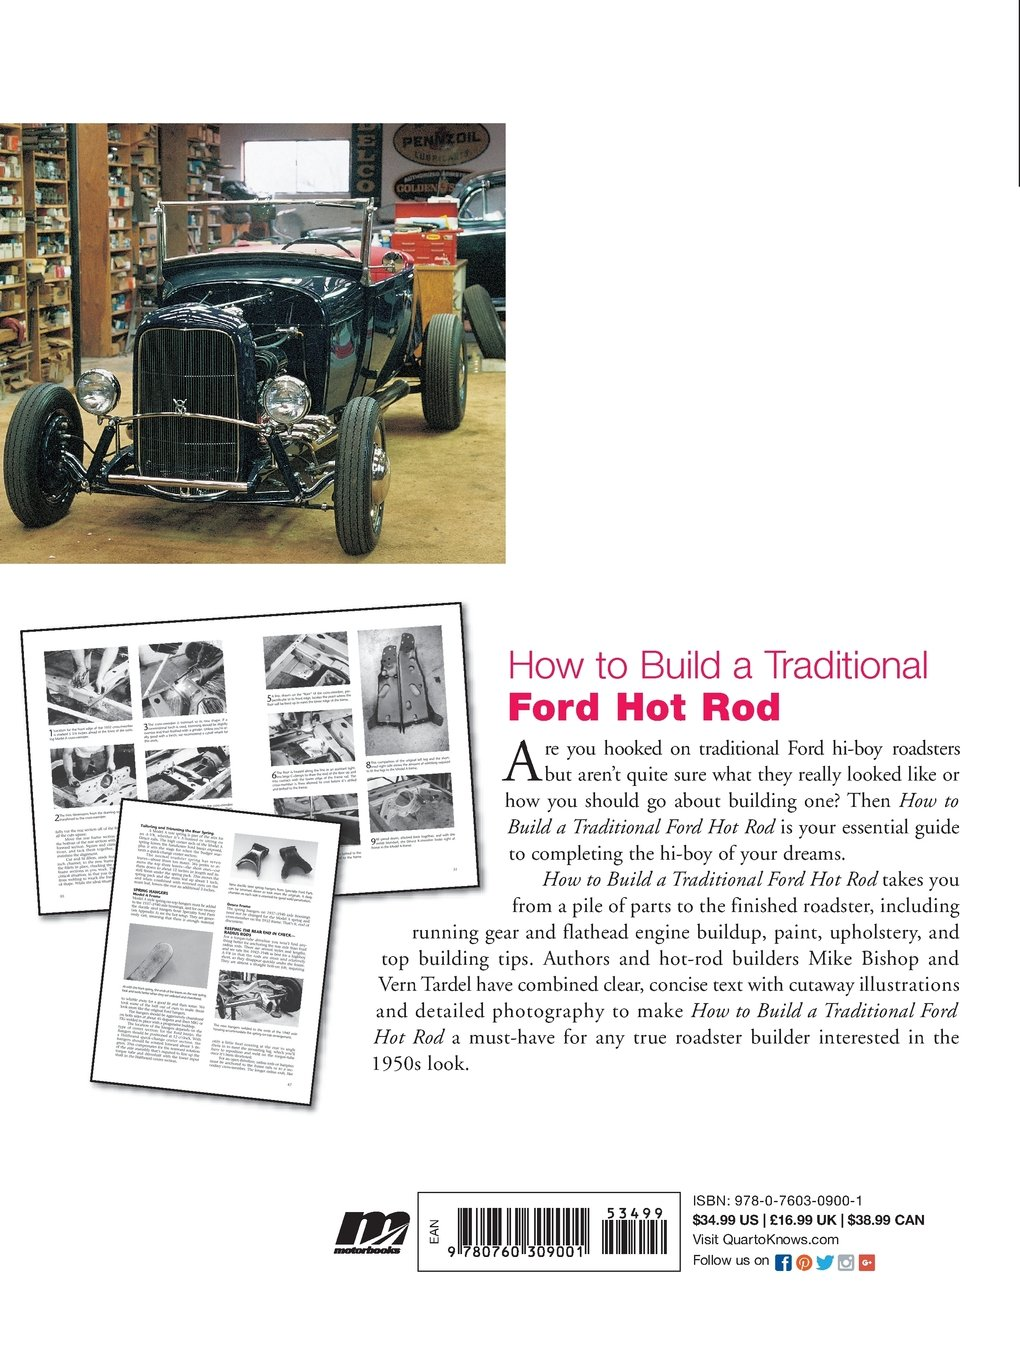 amazon it: how to build a traditional ford hot rod - mike bishop, vern  tardel, steve amos - libri in altre lingue